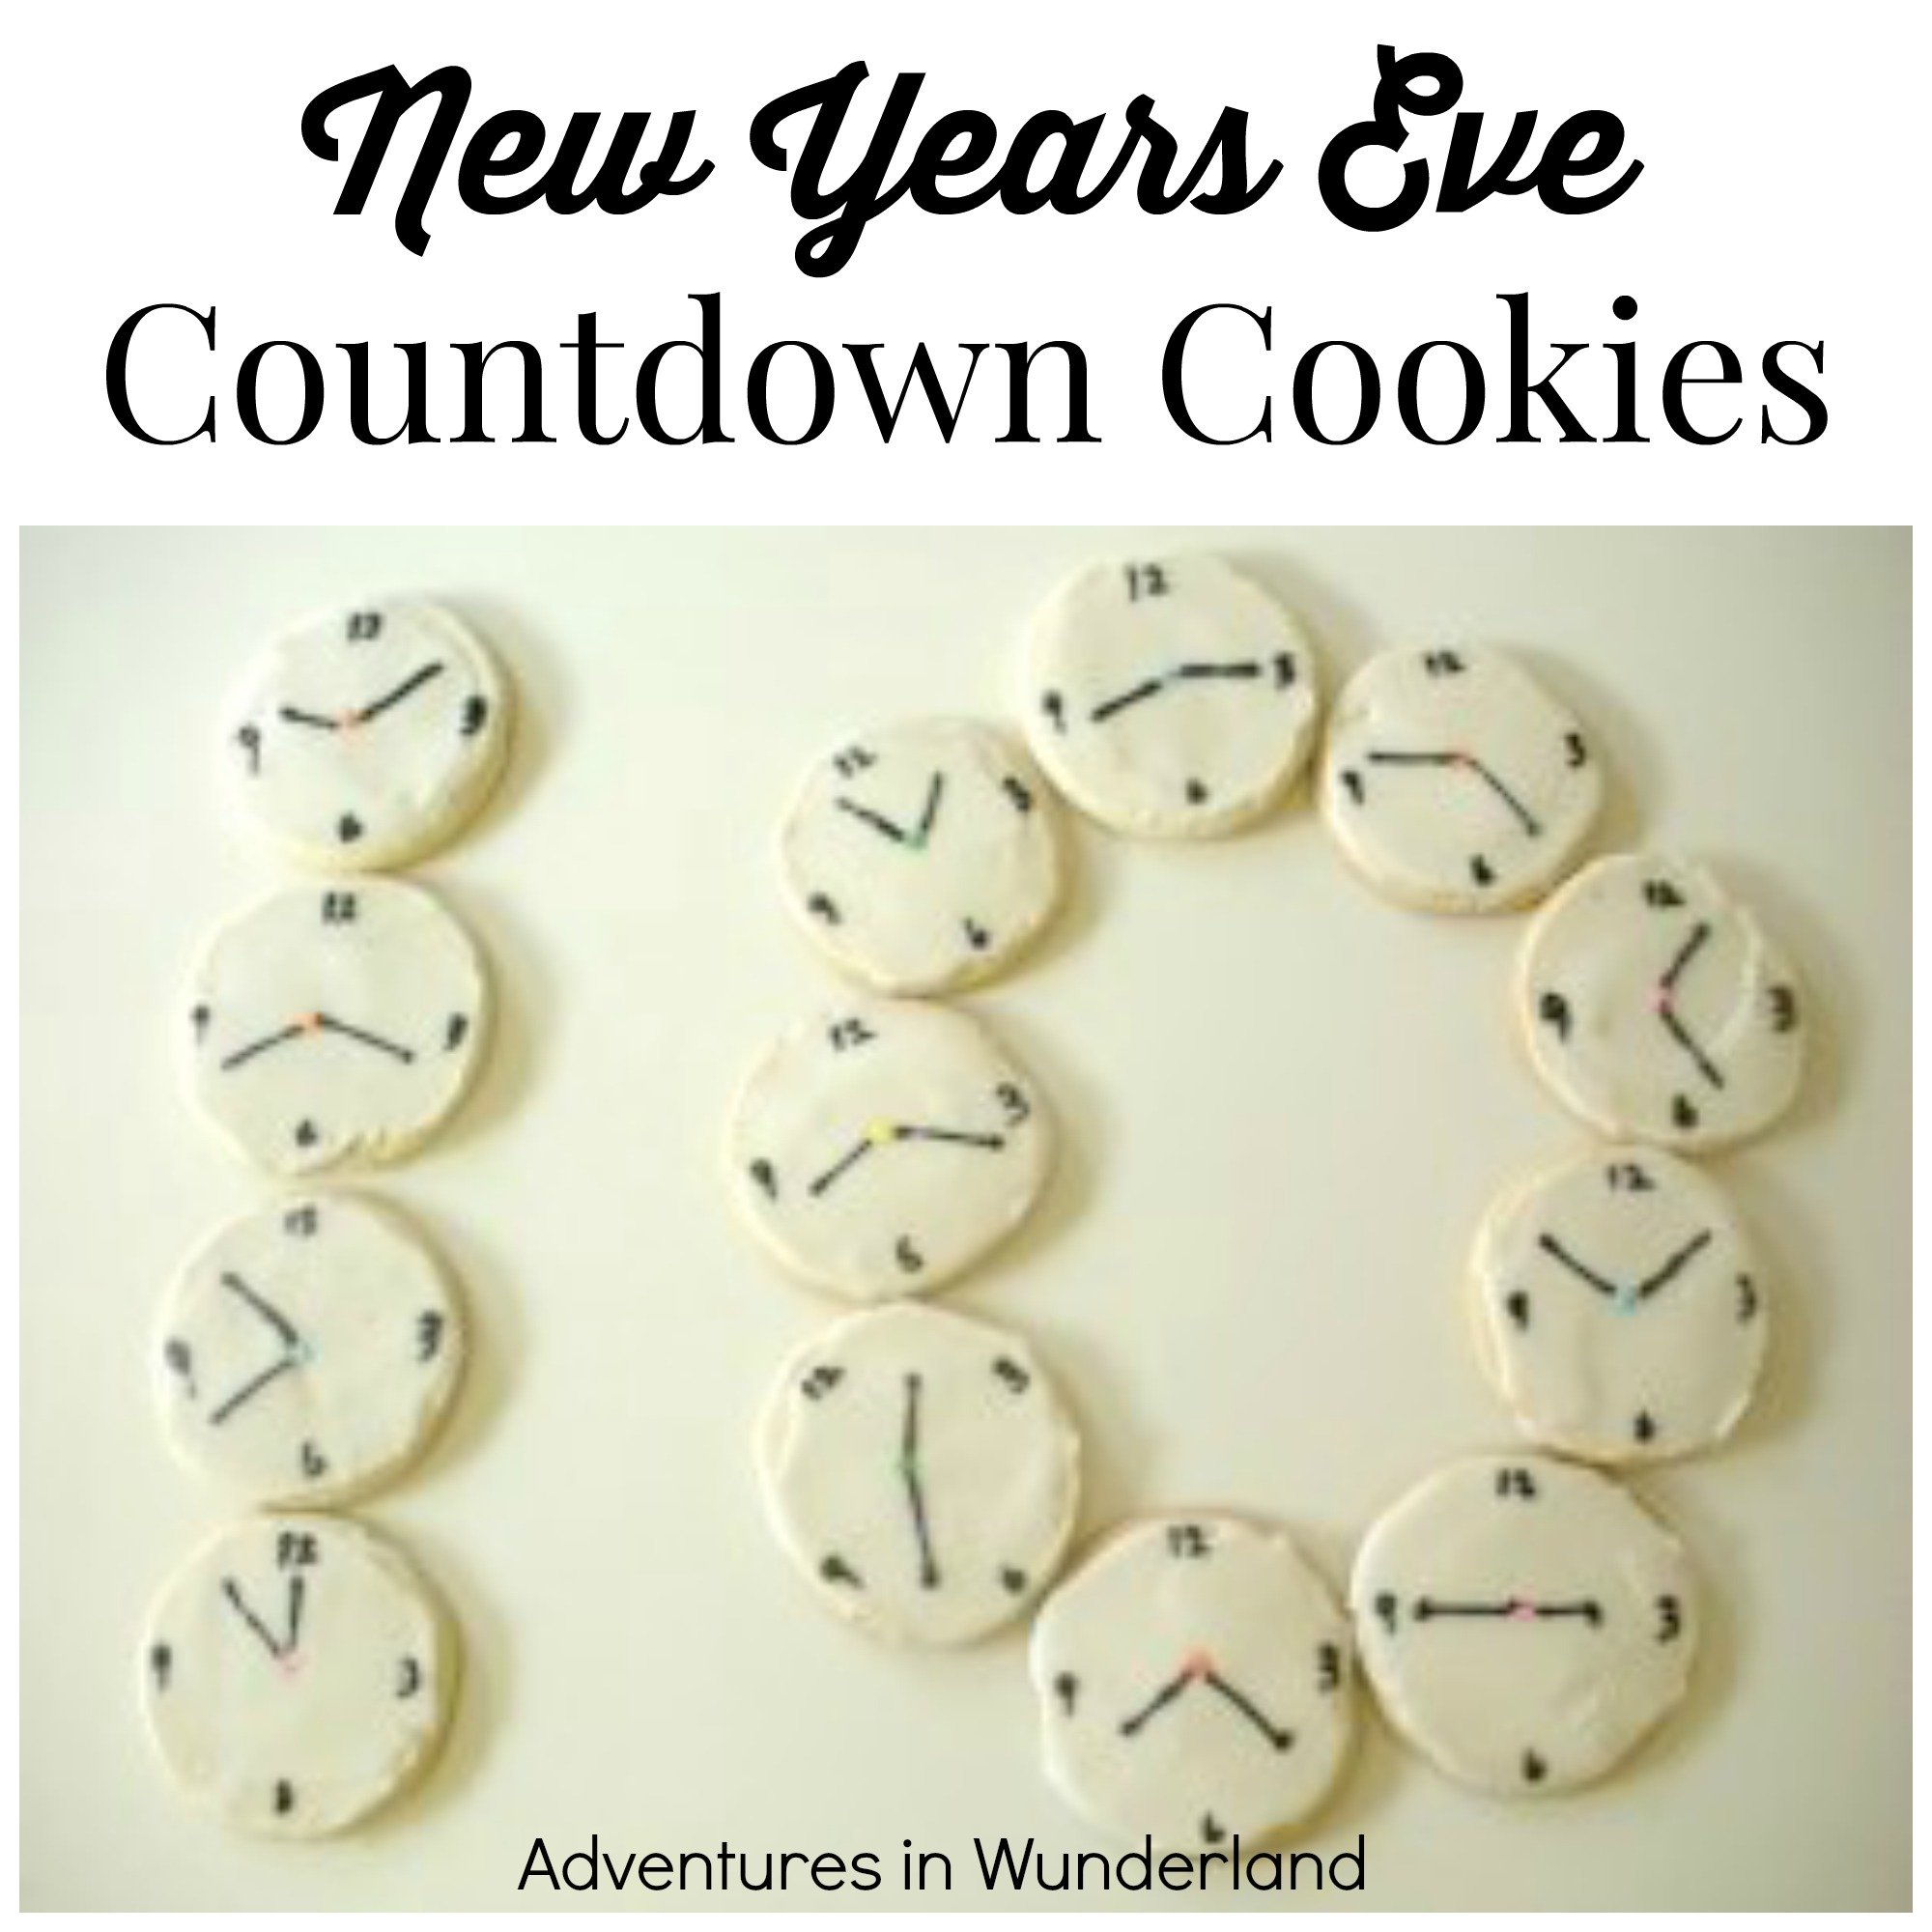 New Years Eve Countdown Cookies